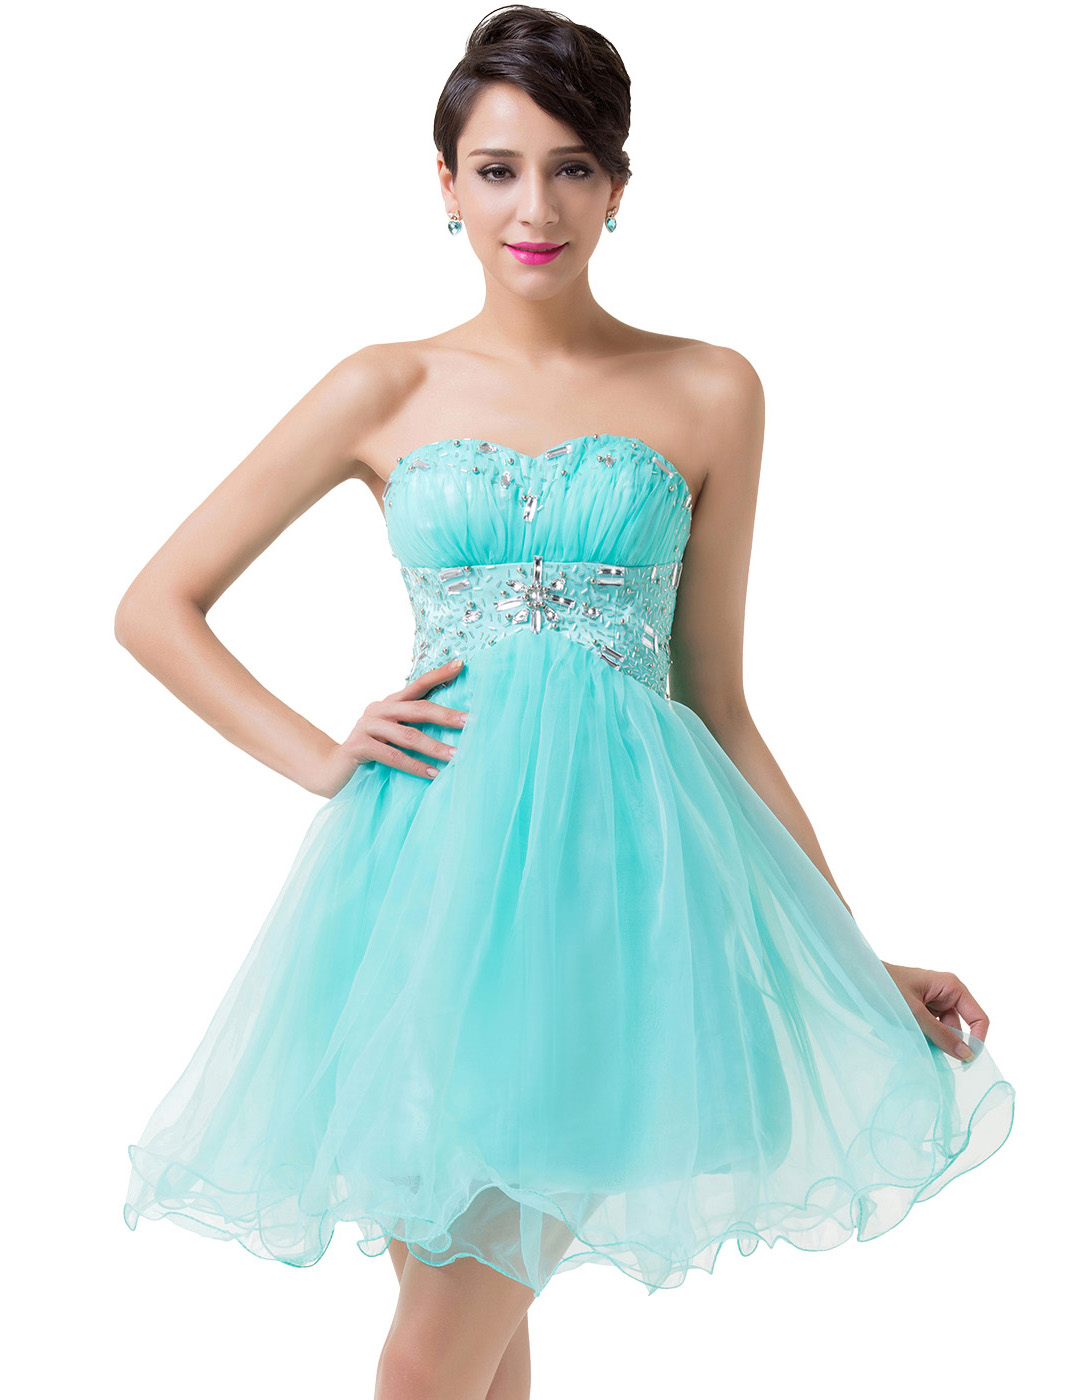 Short Turquoise Prom Dresses Uk - Plus Size Prom Dresses